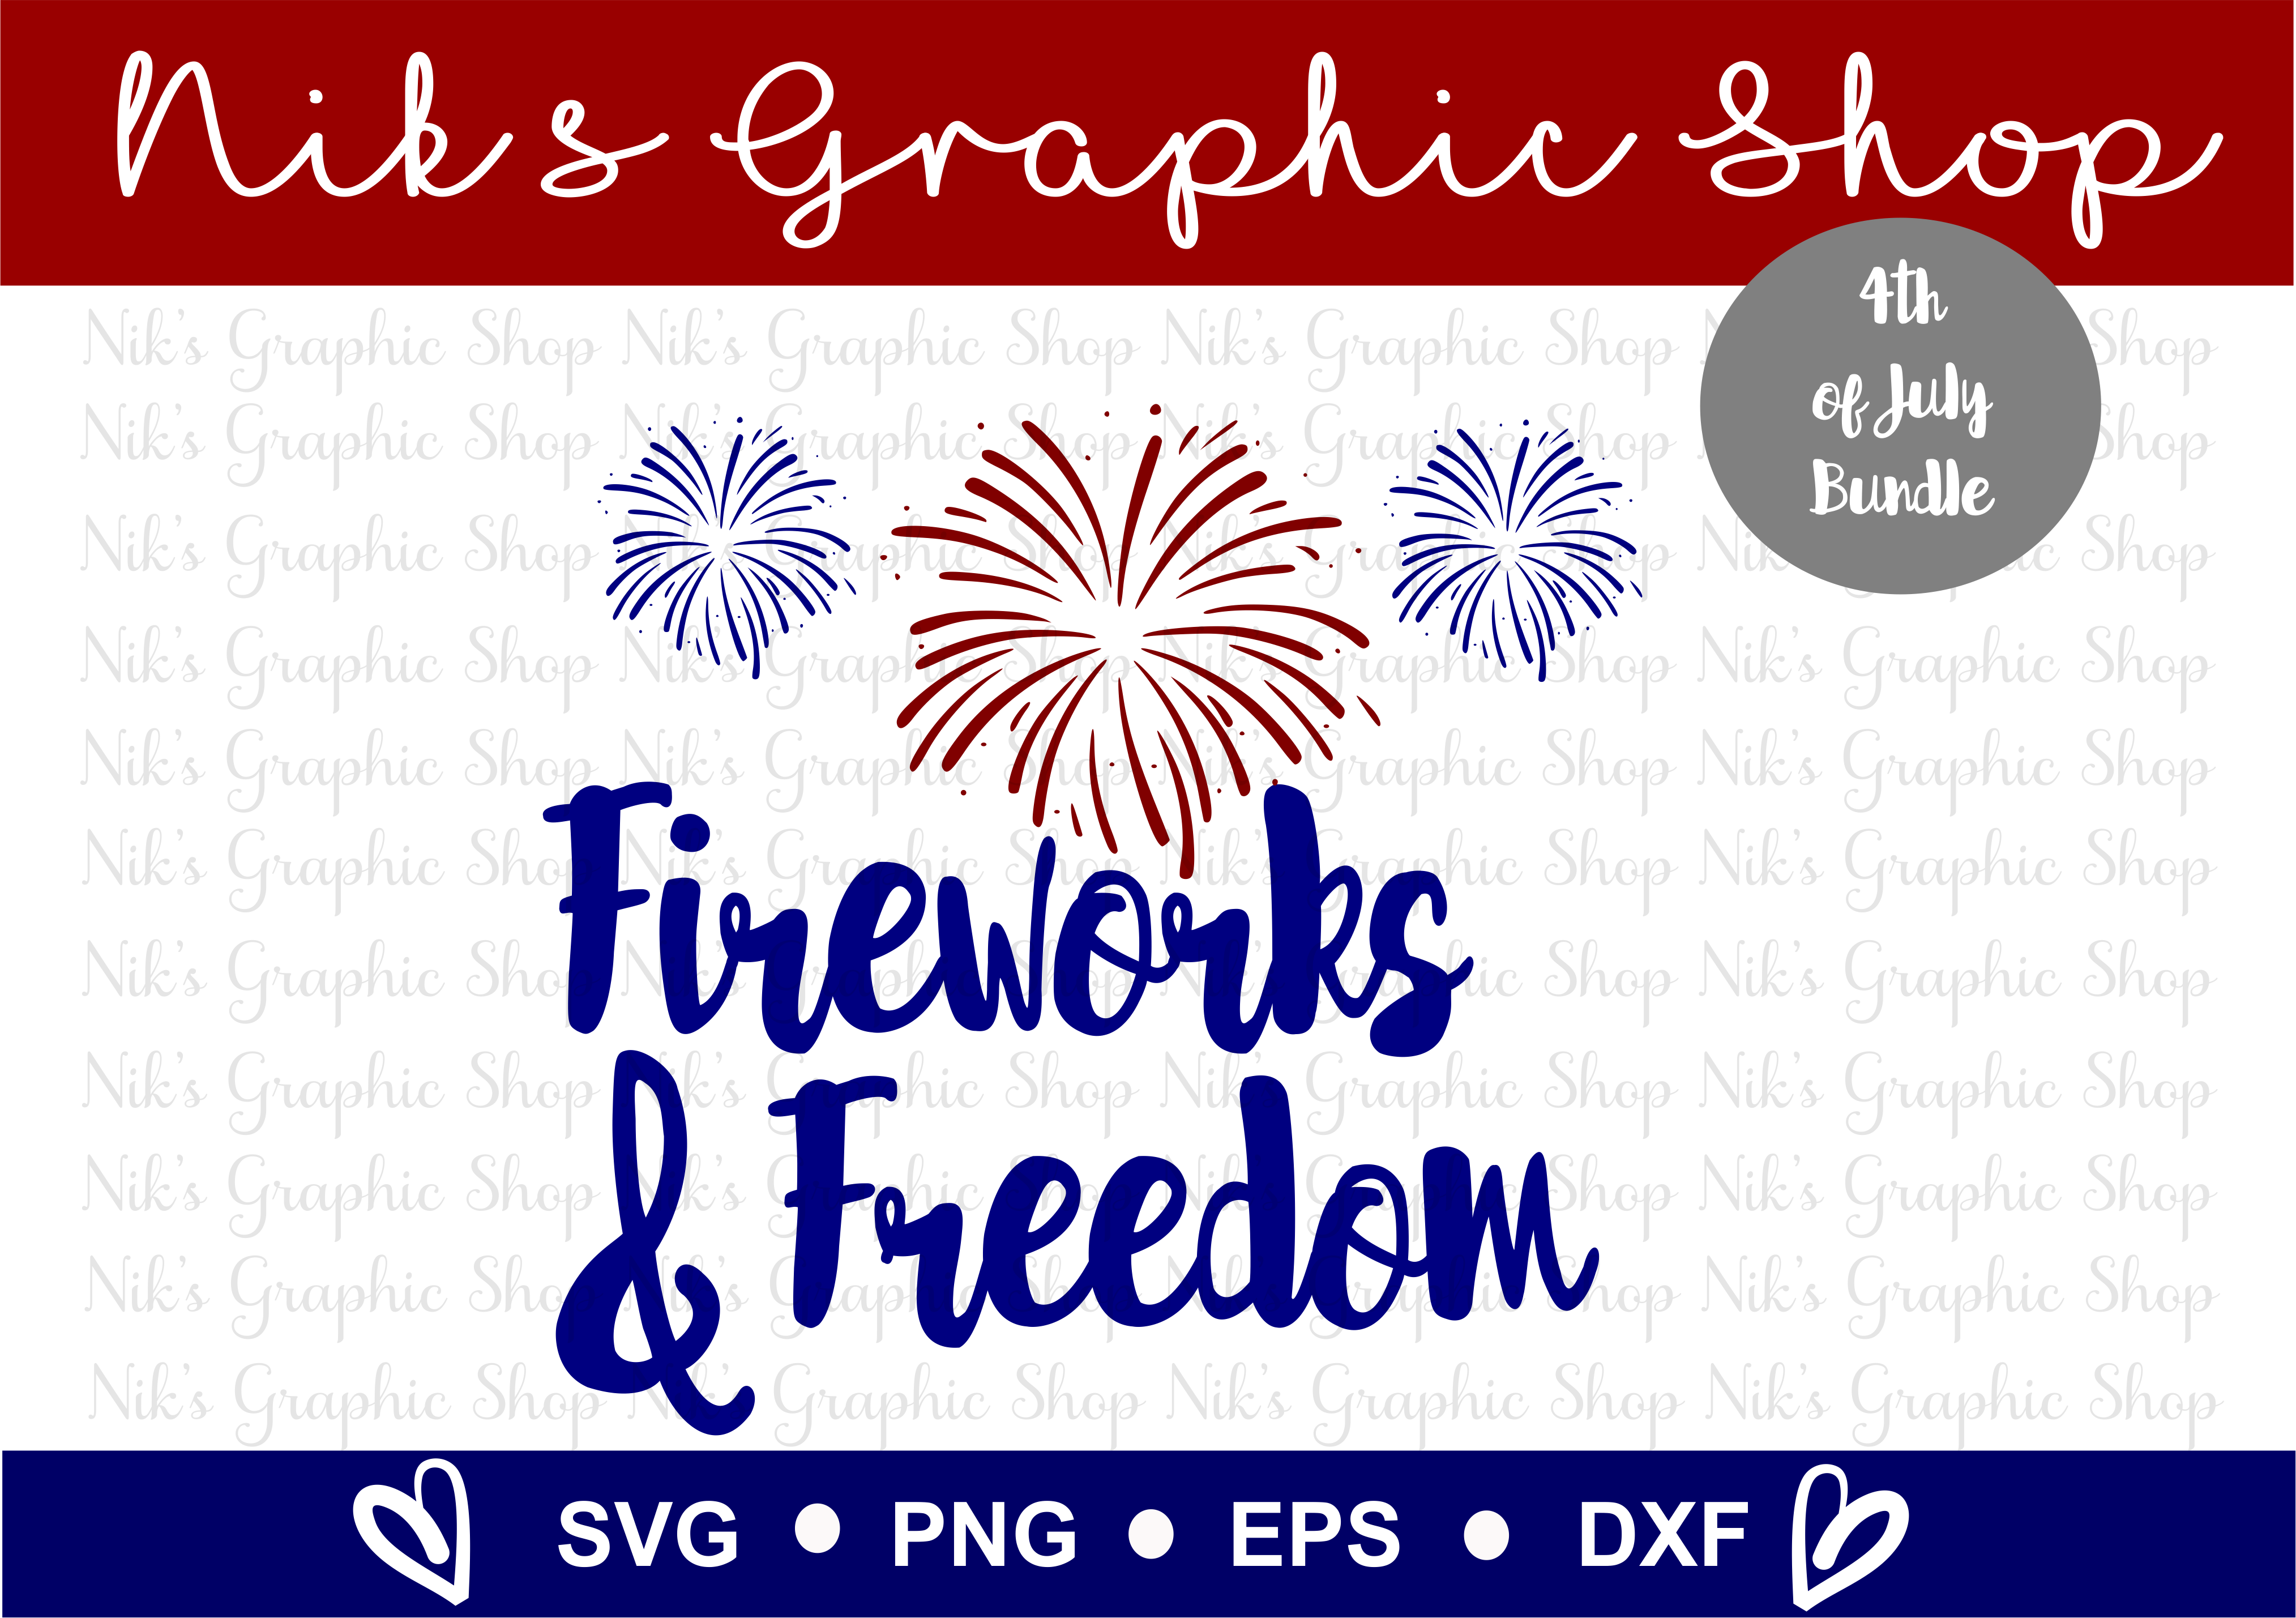 4th of July SVG, Fourth of July, July SVG, 4th SVG, Fourth example image 4